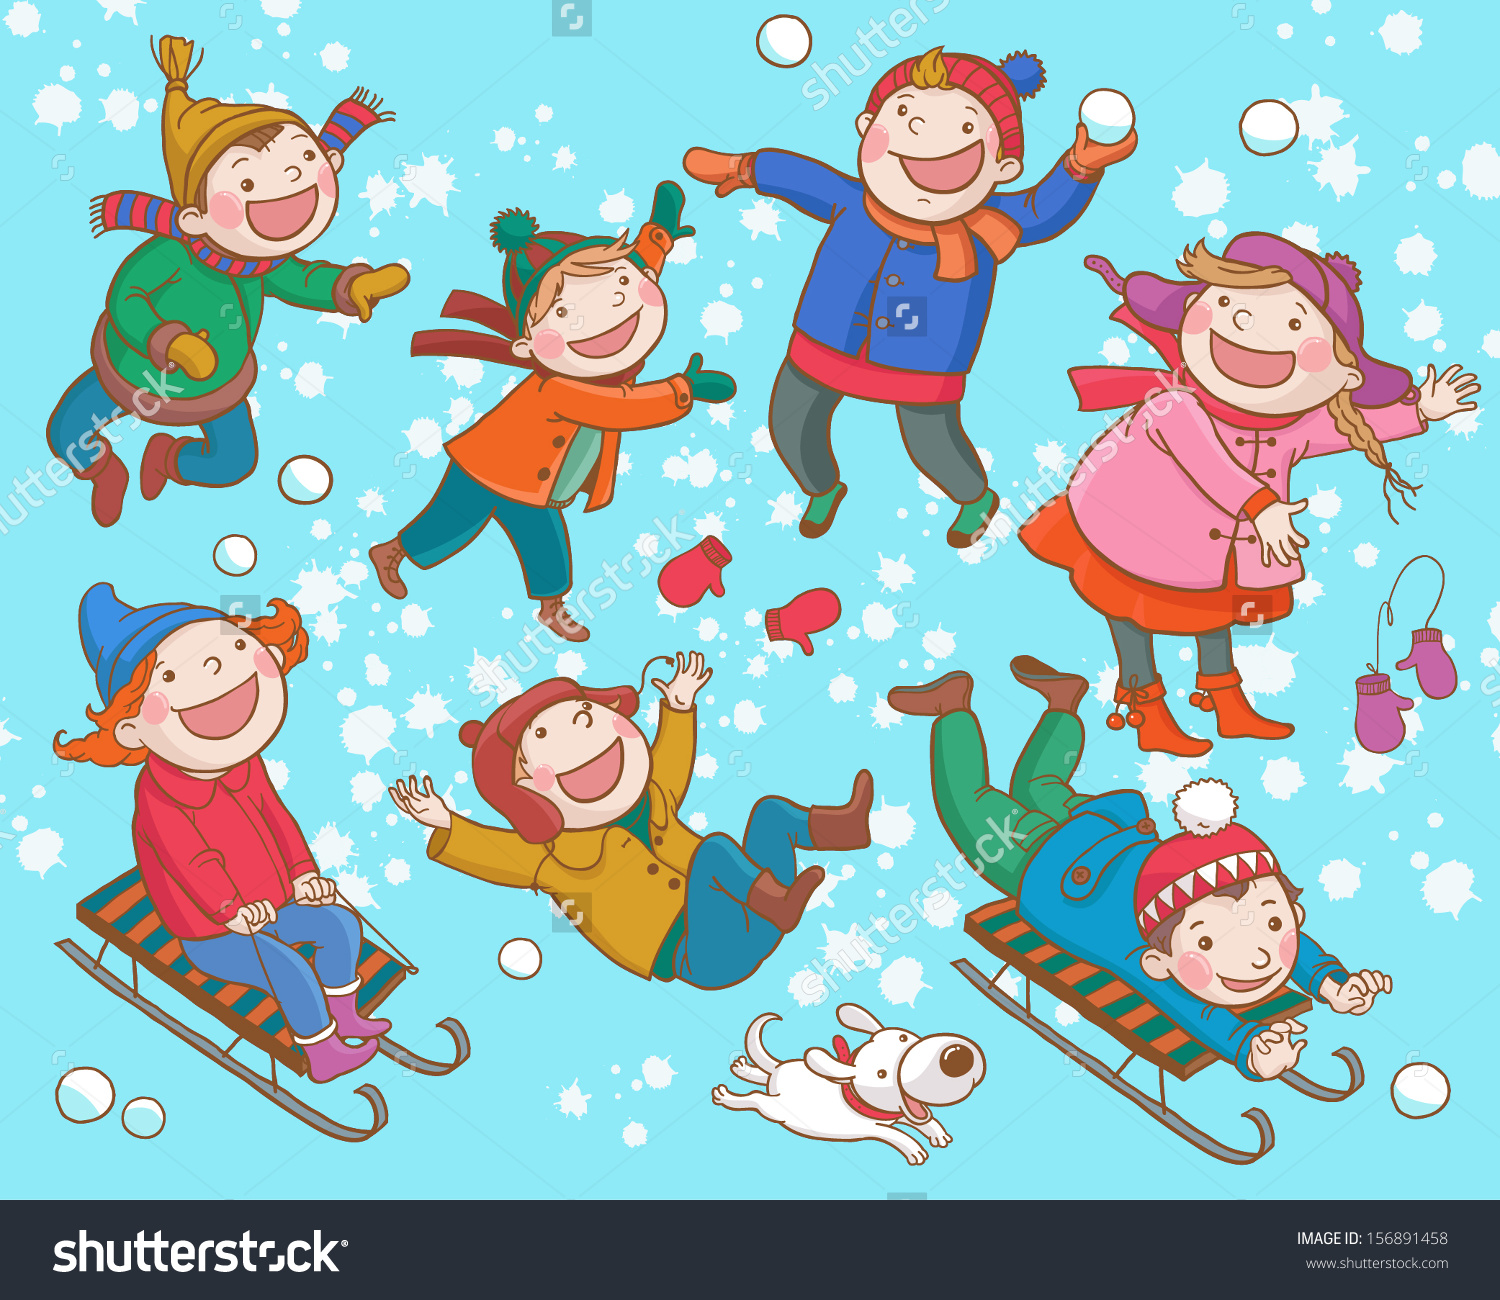 Children Playing Snow Winter Activities Isolated Stock Vector.